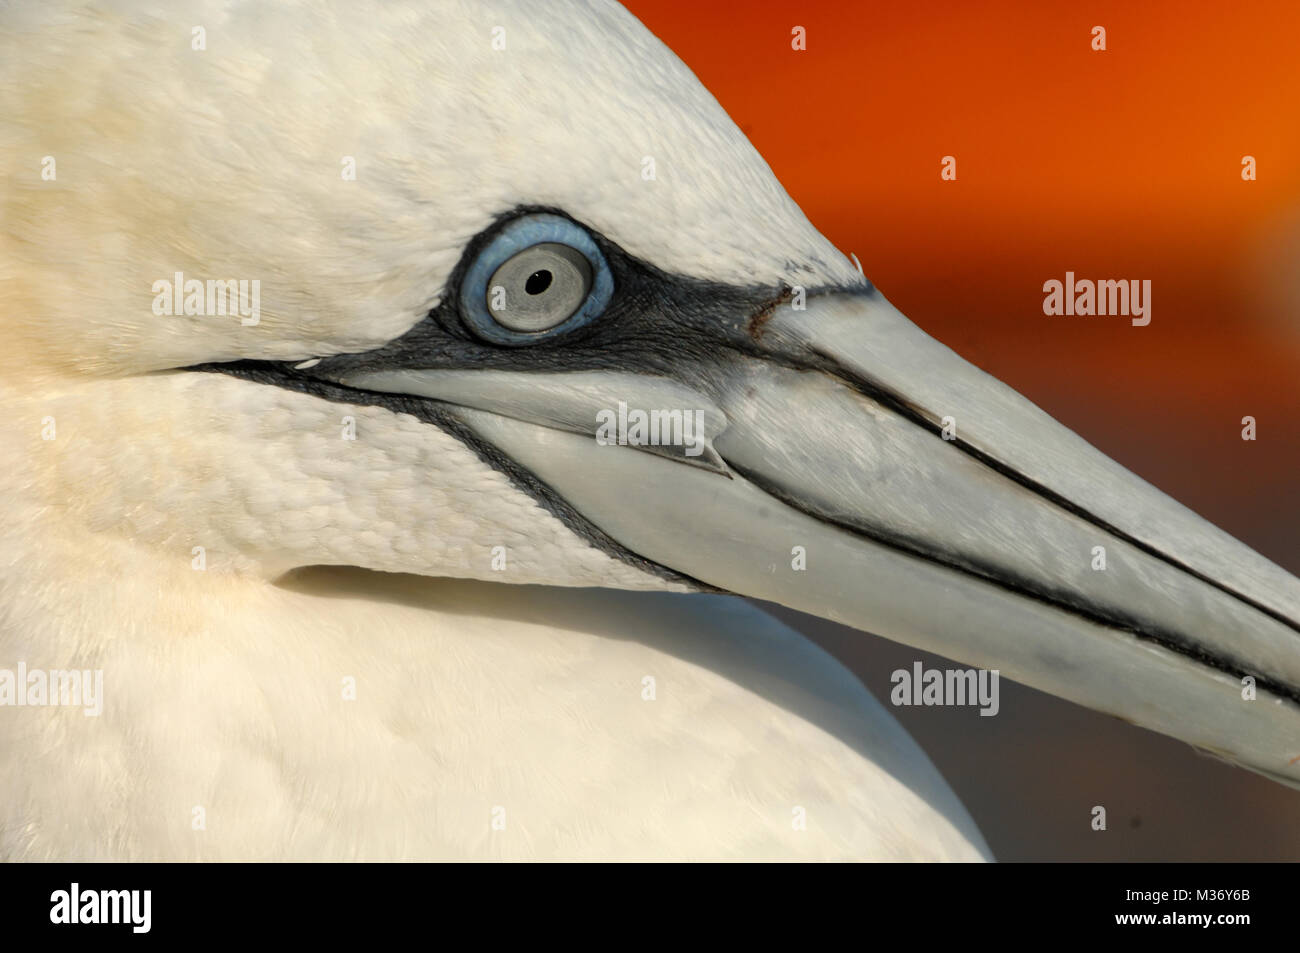 Portrait of Northern Gannet, Morus bassanus, Against the Orange Hull of a Fishing Boat in the Port of Carry-le-Rouet - Stock Image